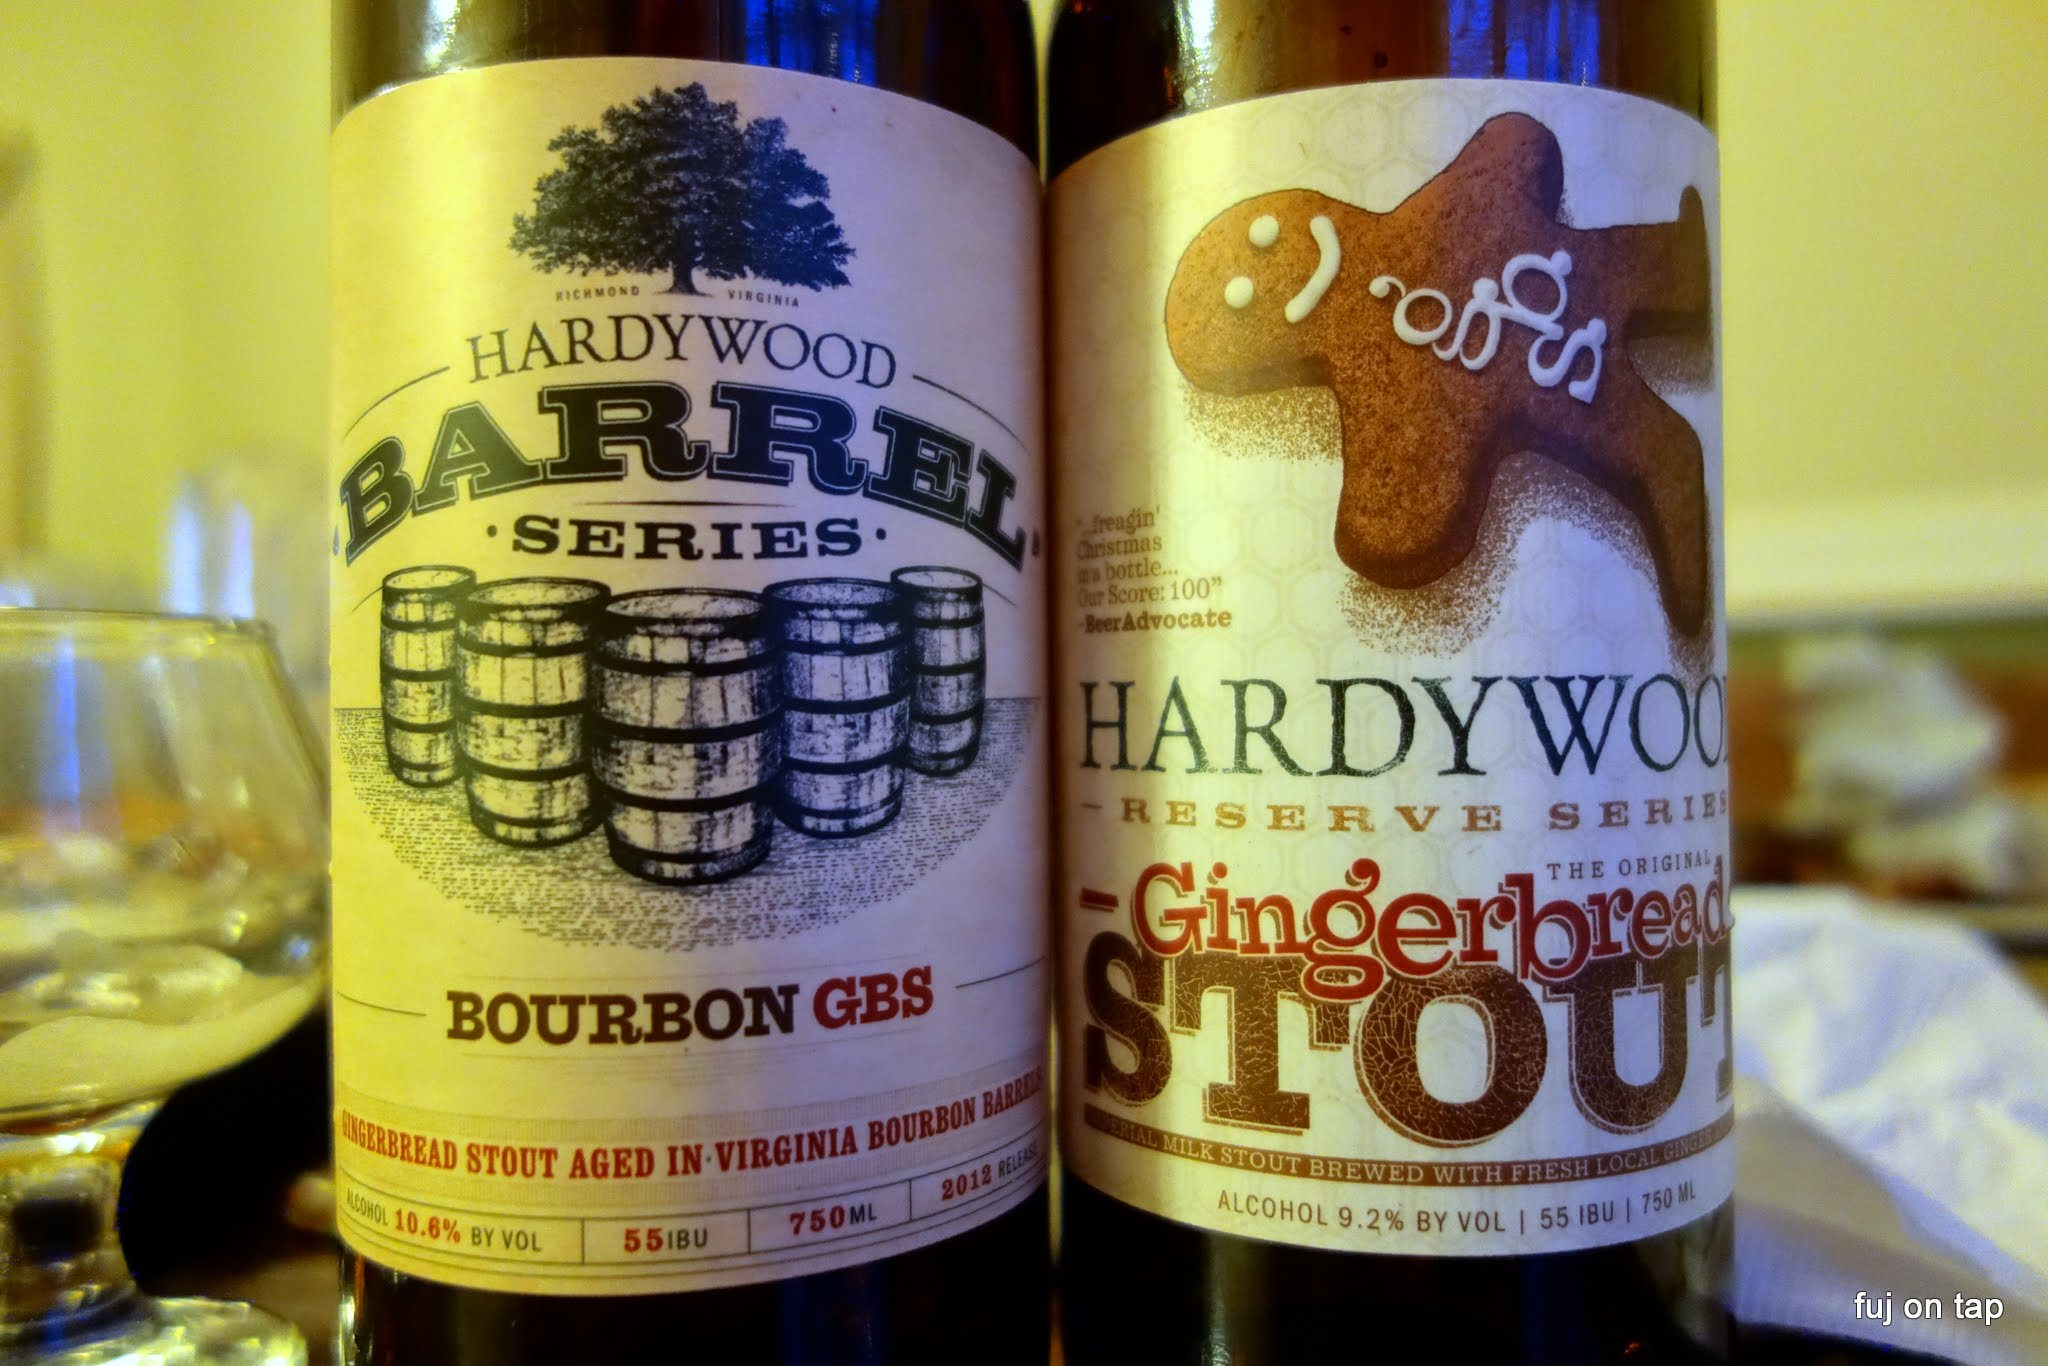 Hardywood Bourbon GBS and Gingerbread Stout